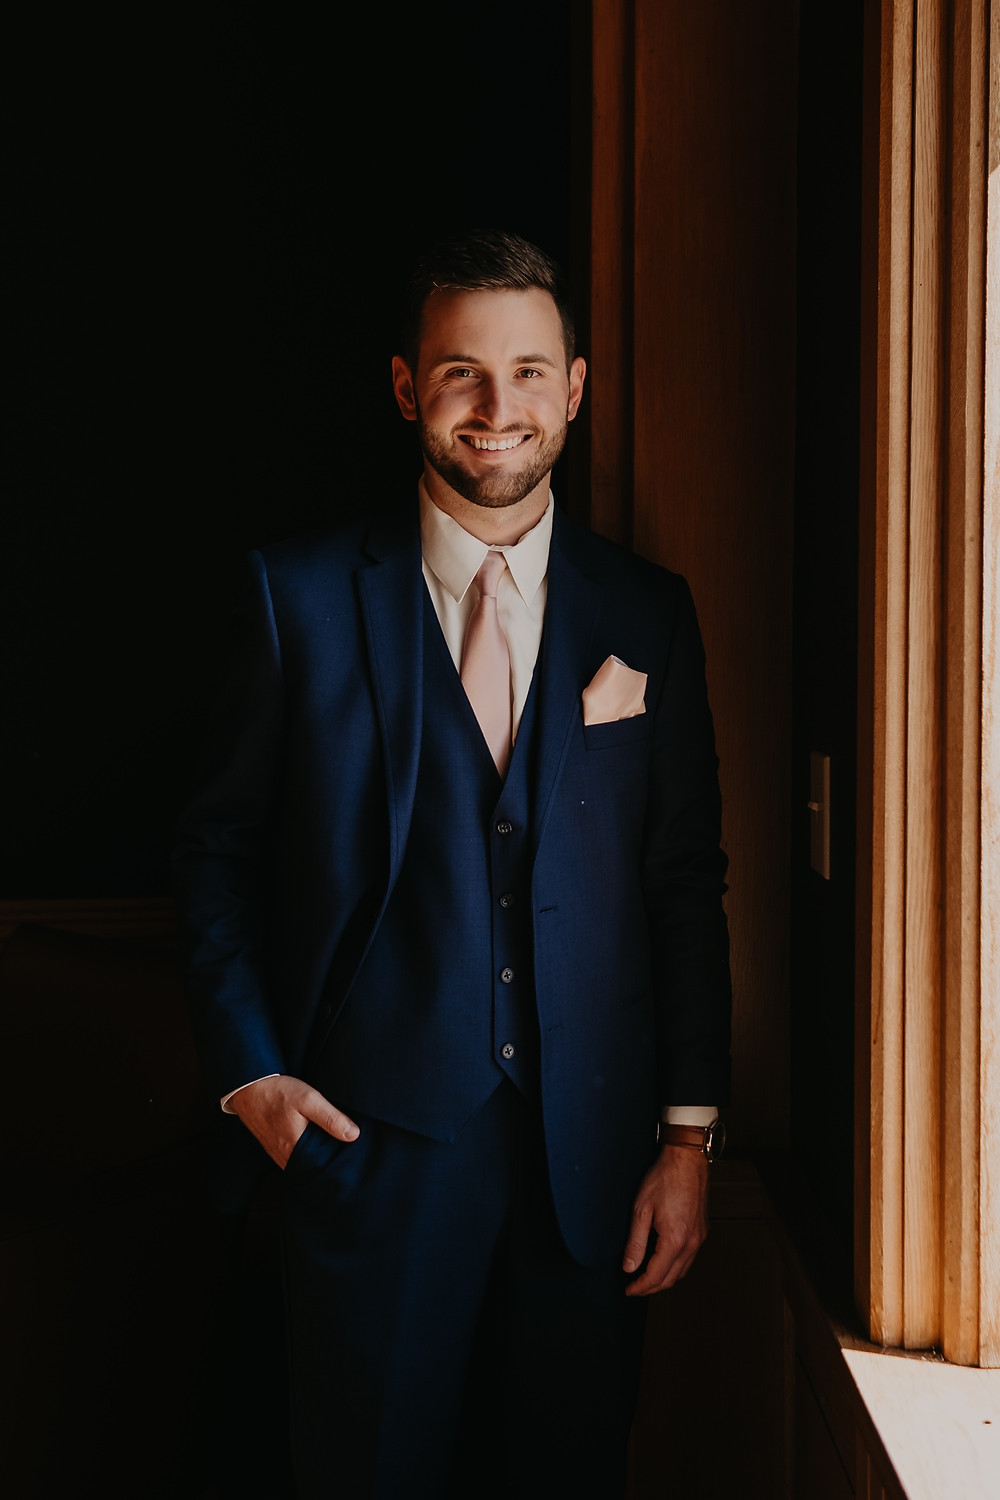 Groom before wedding day at Mission Point Resort in Mackinac. Photographed by Nicole Leanne Photography.